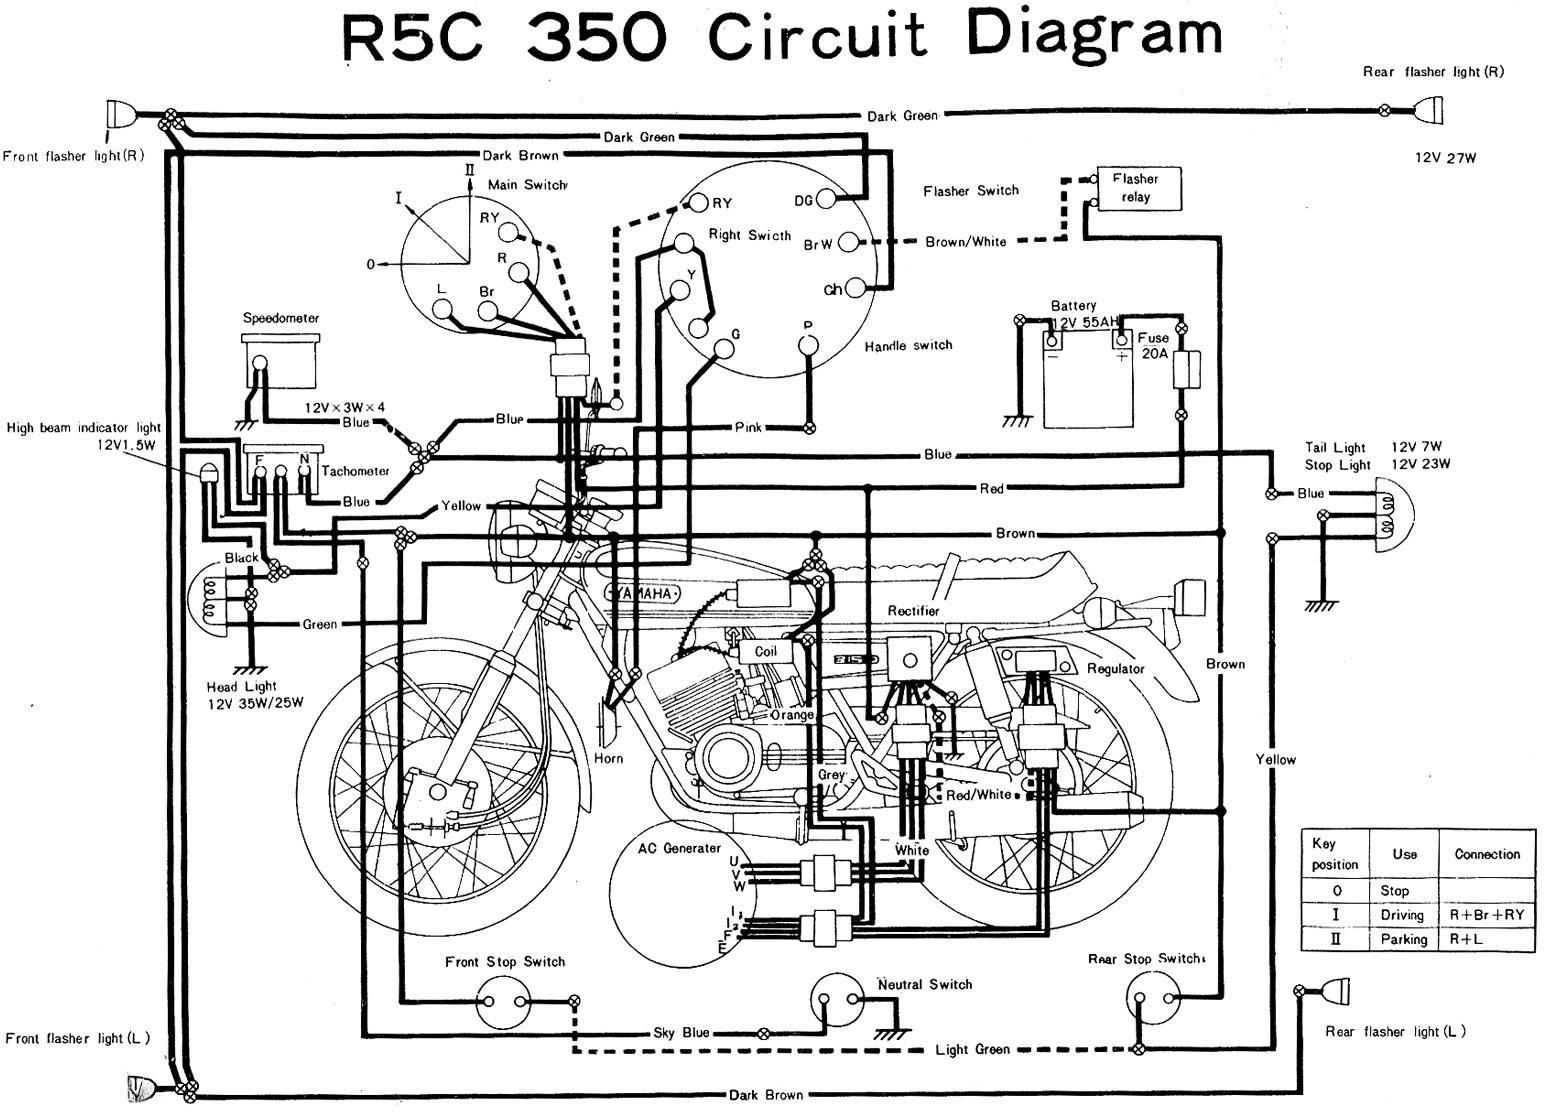 Yamaha Wiring Diagram - Data Wiring Diagram Schematic - Yamaha Outboard Ignition Switch Wiring Diagram